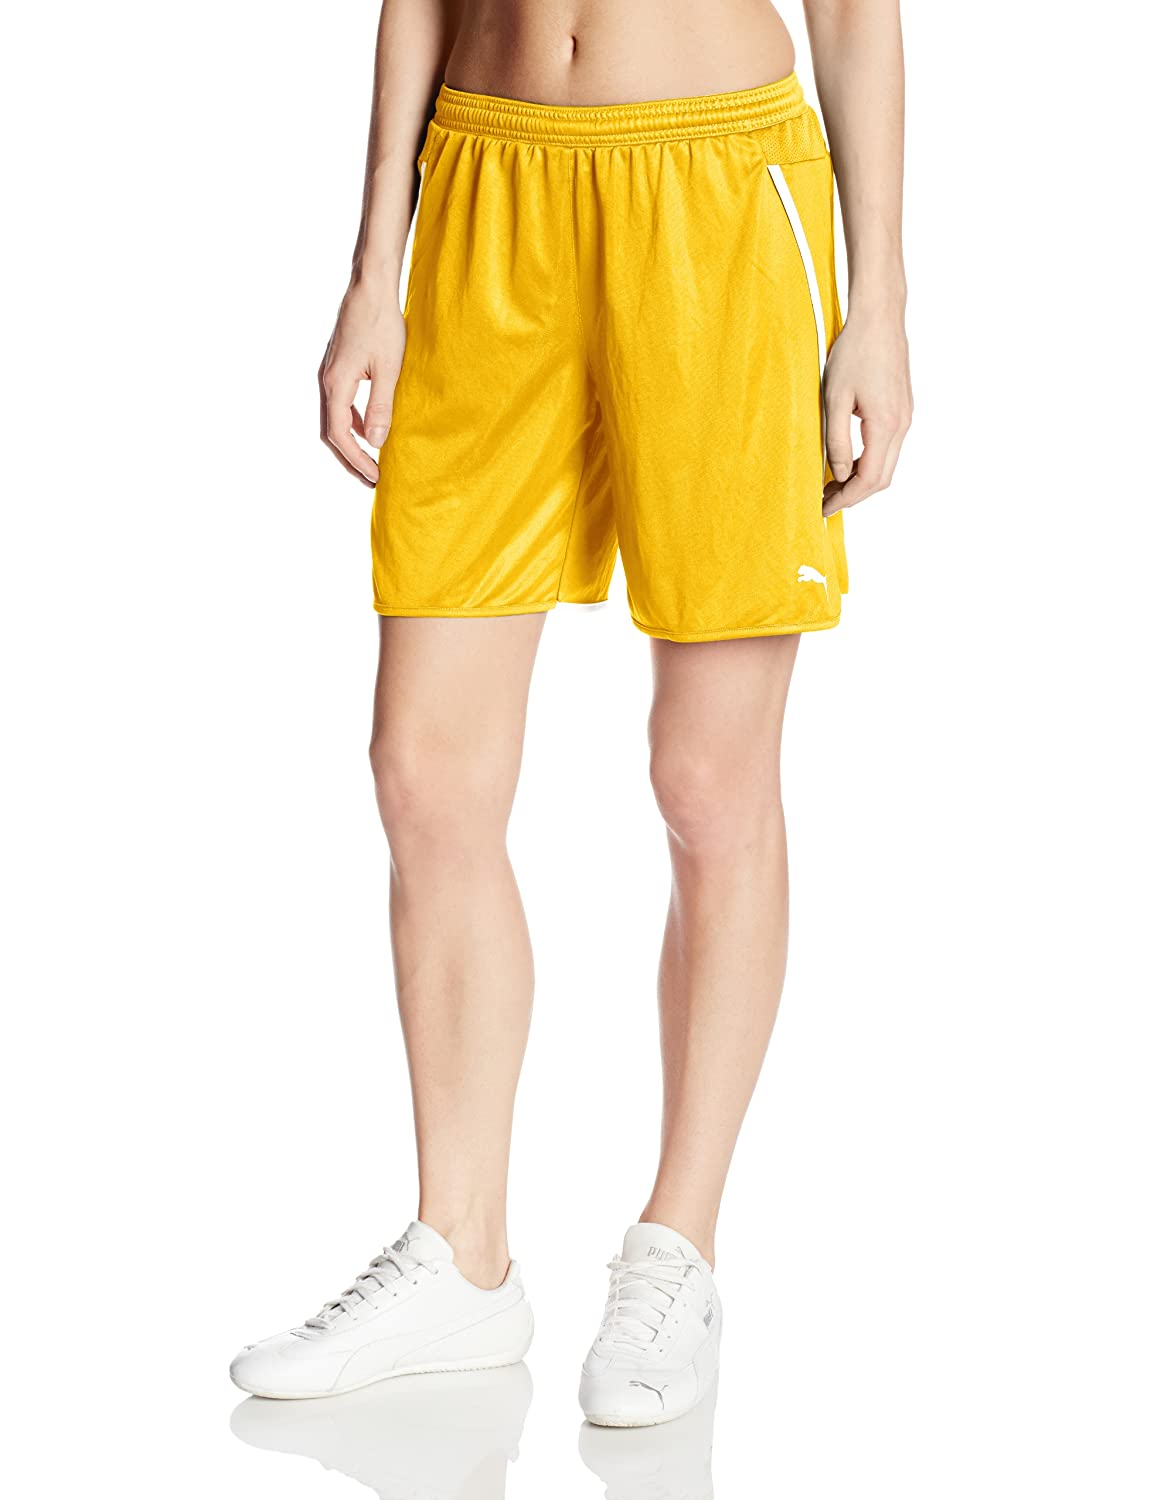 PUMA SHORTS レディース B00H2HNY0C 3L|Team Yellow/White Team Yellow/White 3L